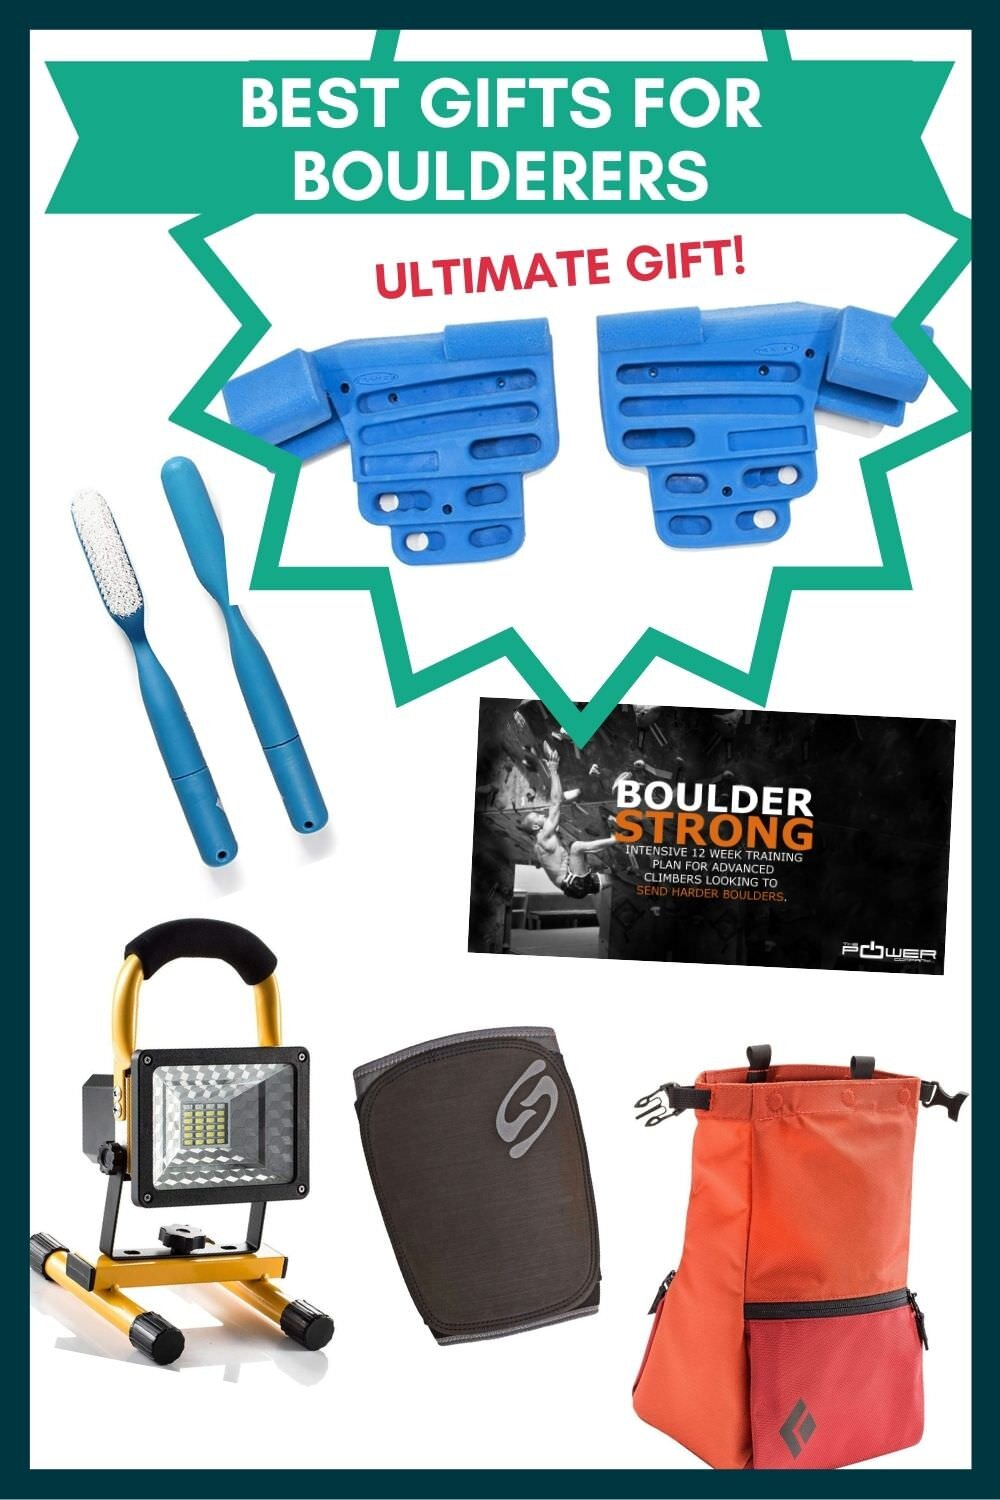 These ideas would make great gifts for boulderers!